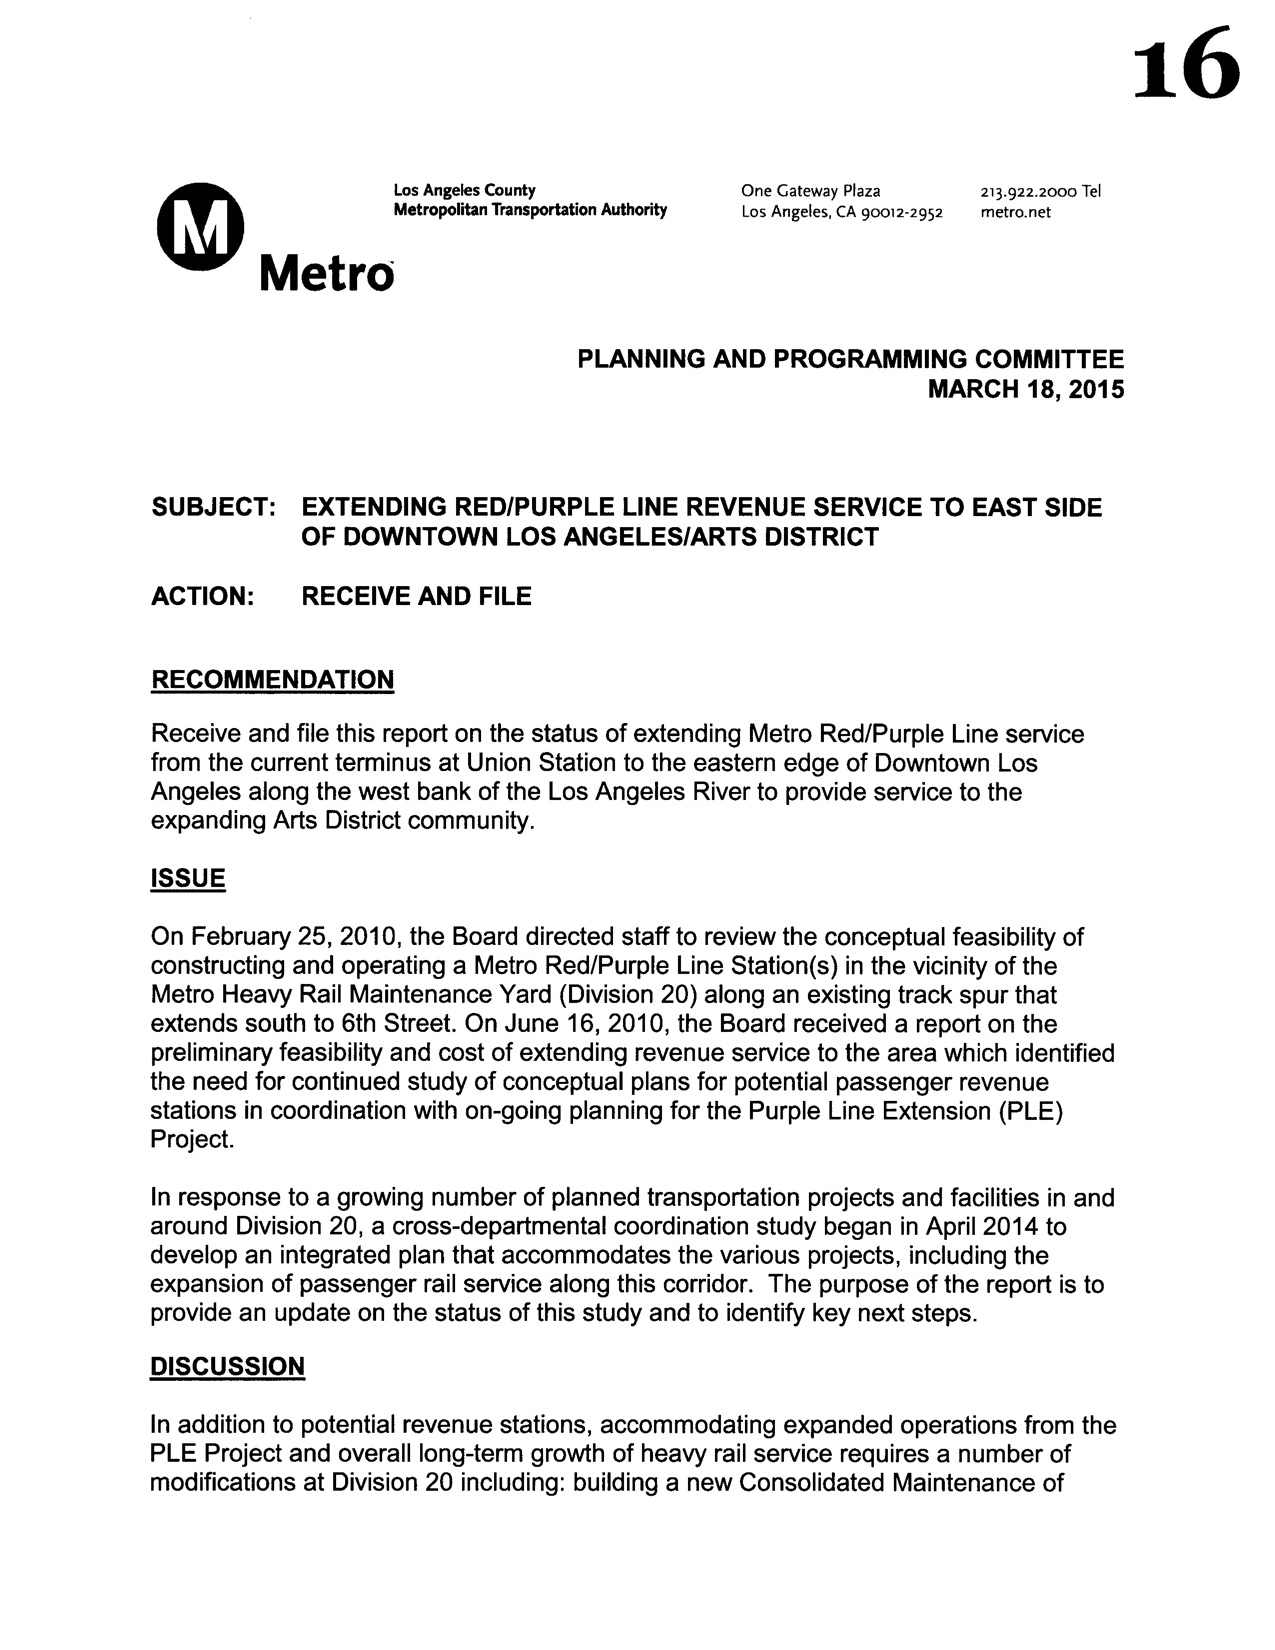 Delightful Staff Report Discusses Potential Arts District Station